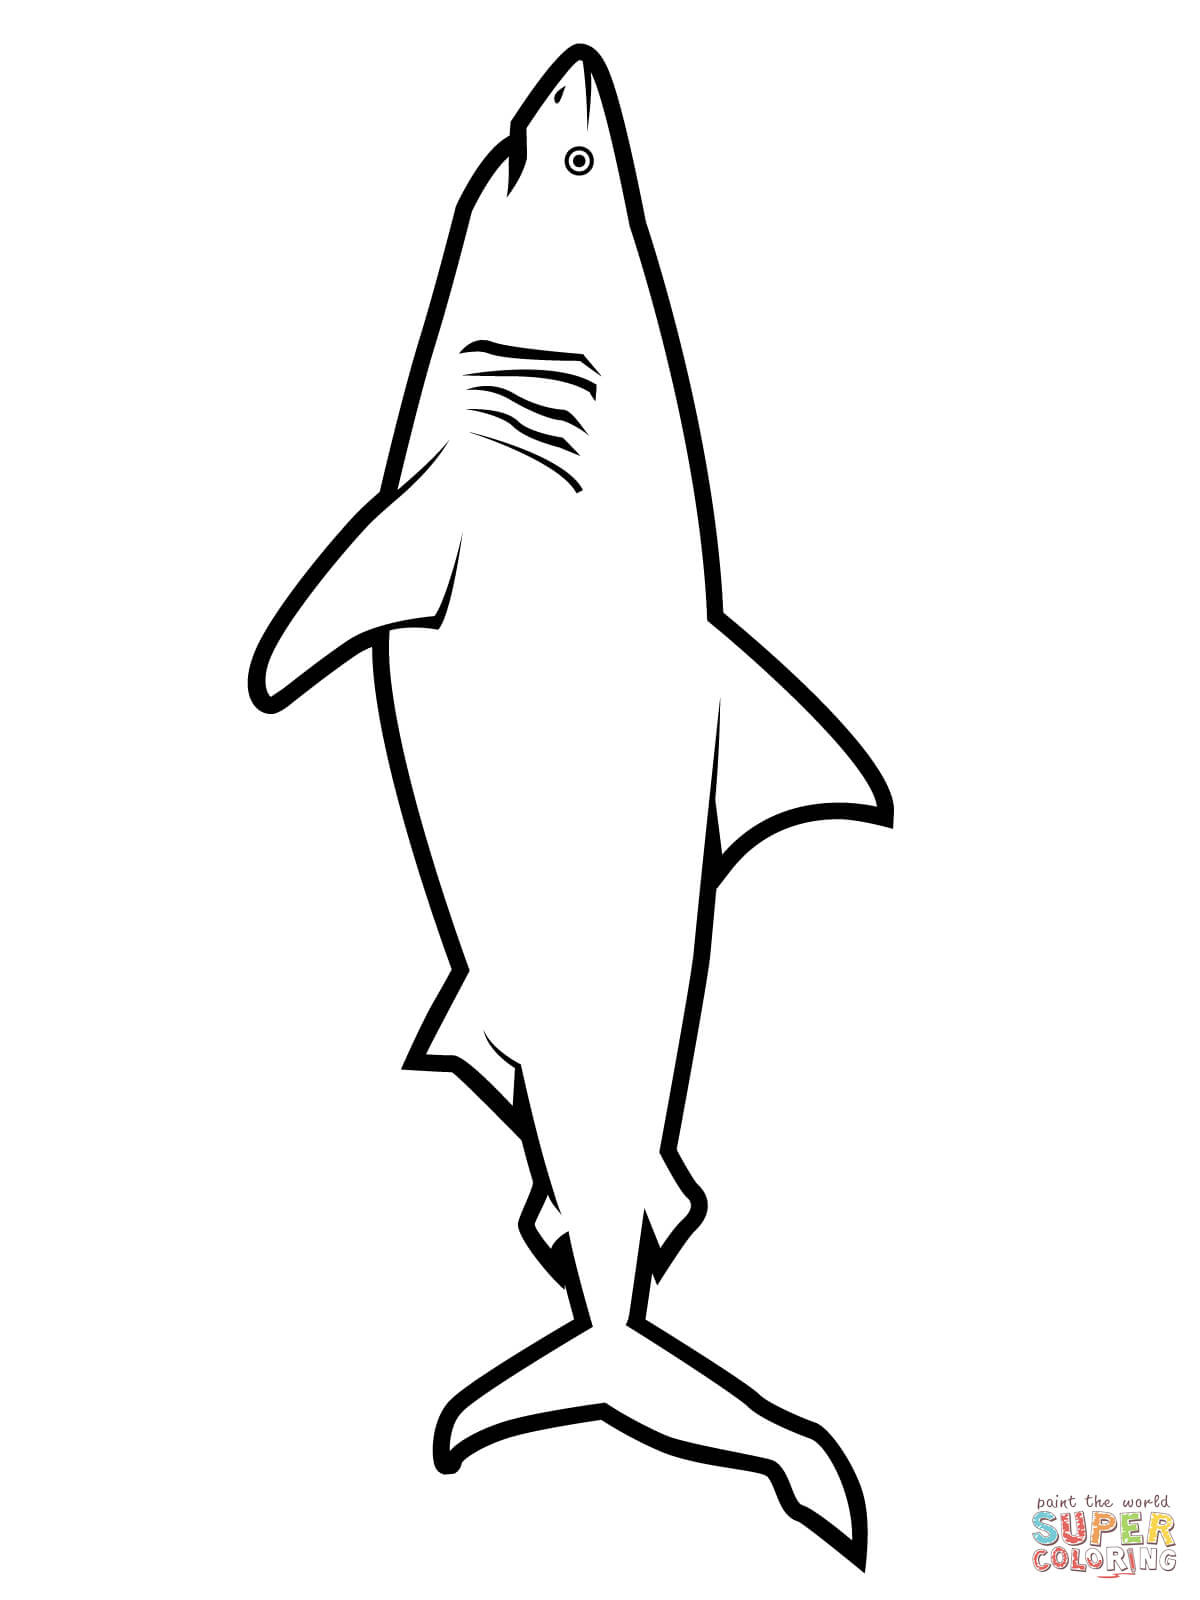 Hungry Shark World Coloring Pages At Getcolorings